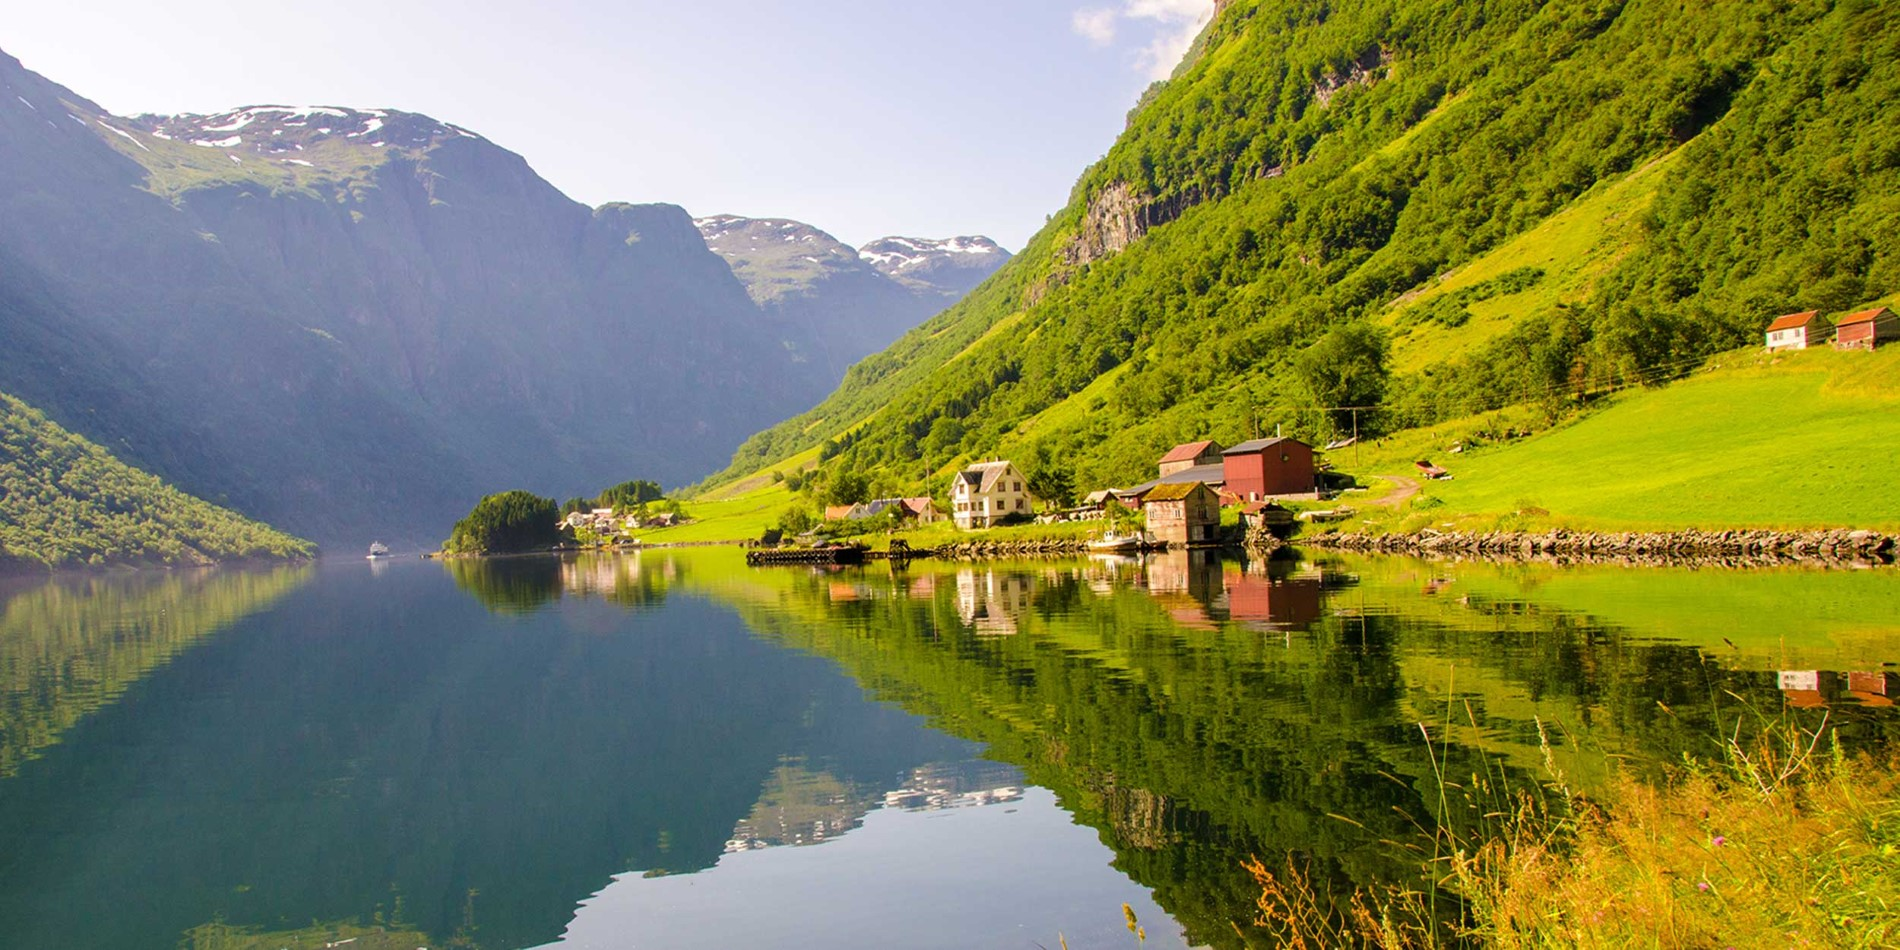 Complement your Hurtigruten cruise with Norway in a Nutshell tour featuring Naeroyfjord